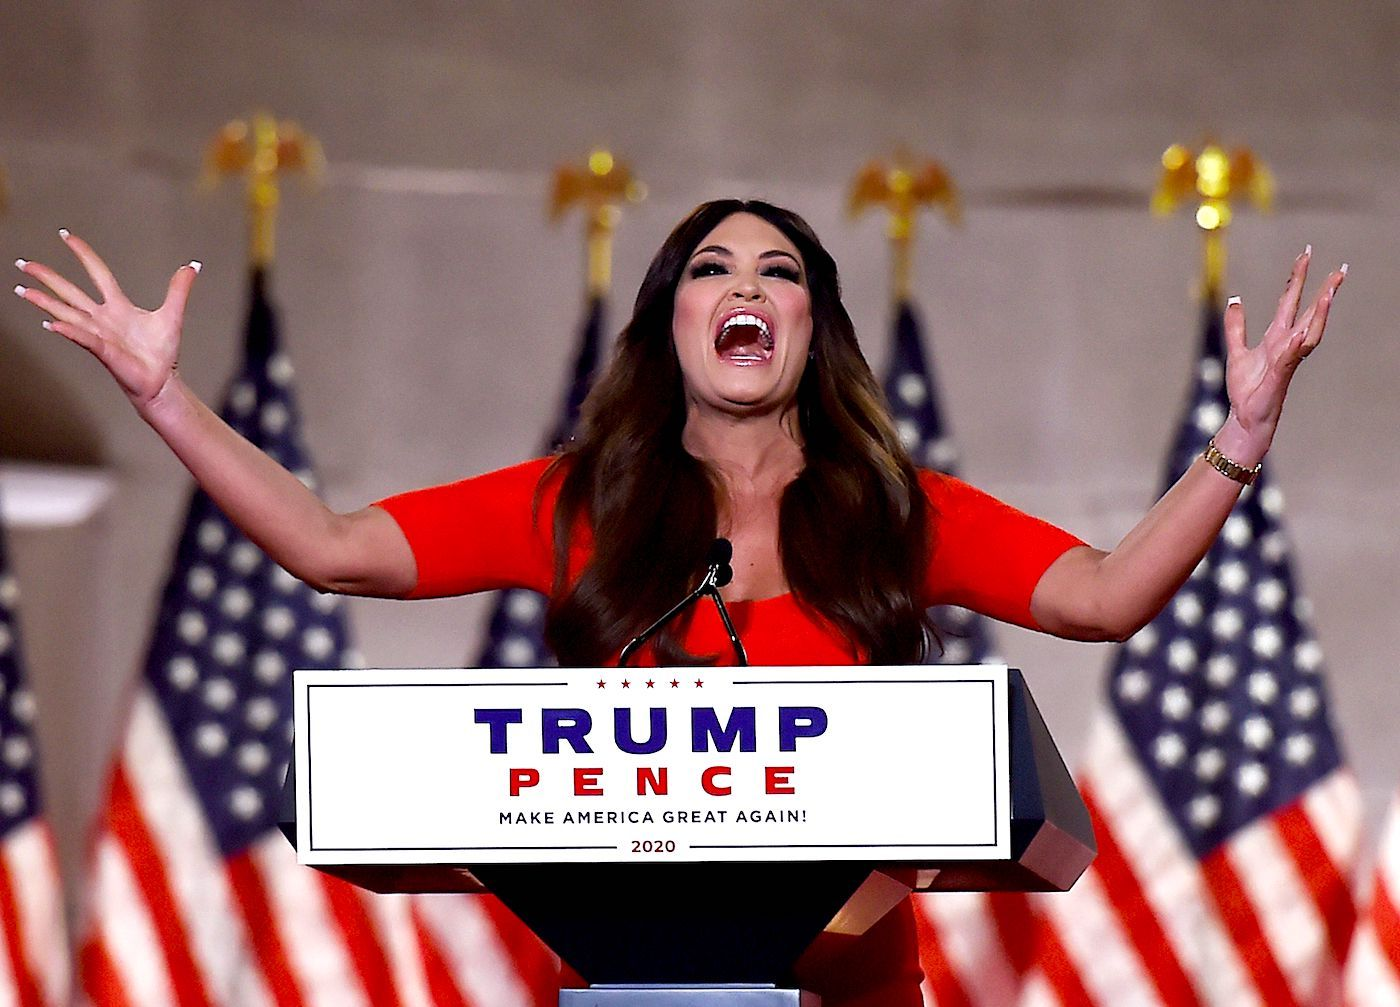 Kimberly Guilfoyle Yelled Her Entire Speech at the RNC